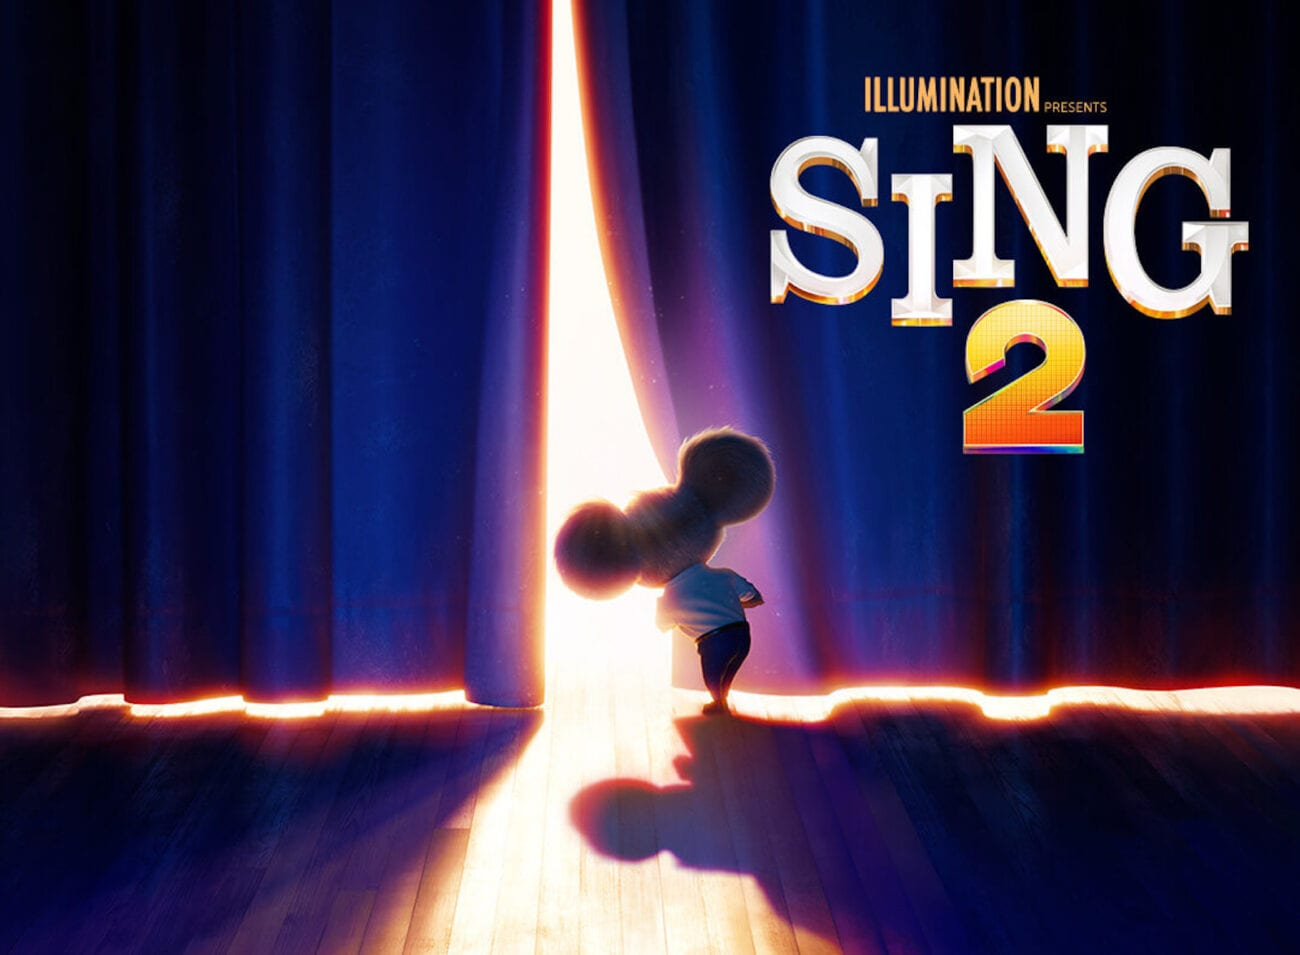 Are the characters from Illumination's jukebox musical 'Sing' coming back for 'Sing 2'? See who's returning to the stage in this new movie.